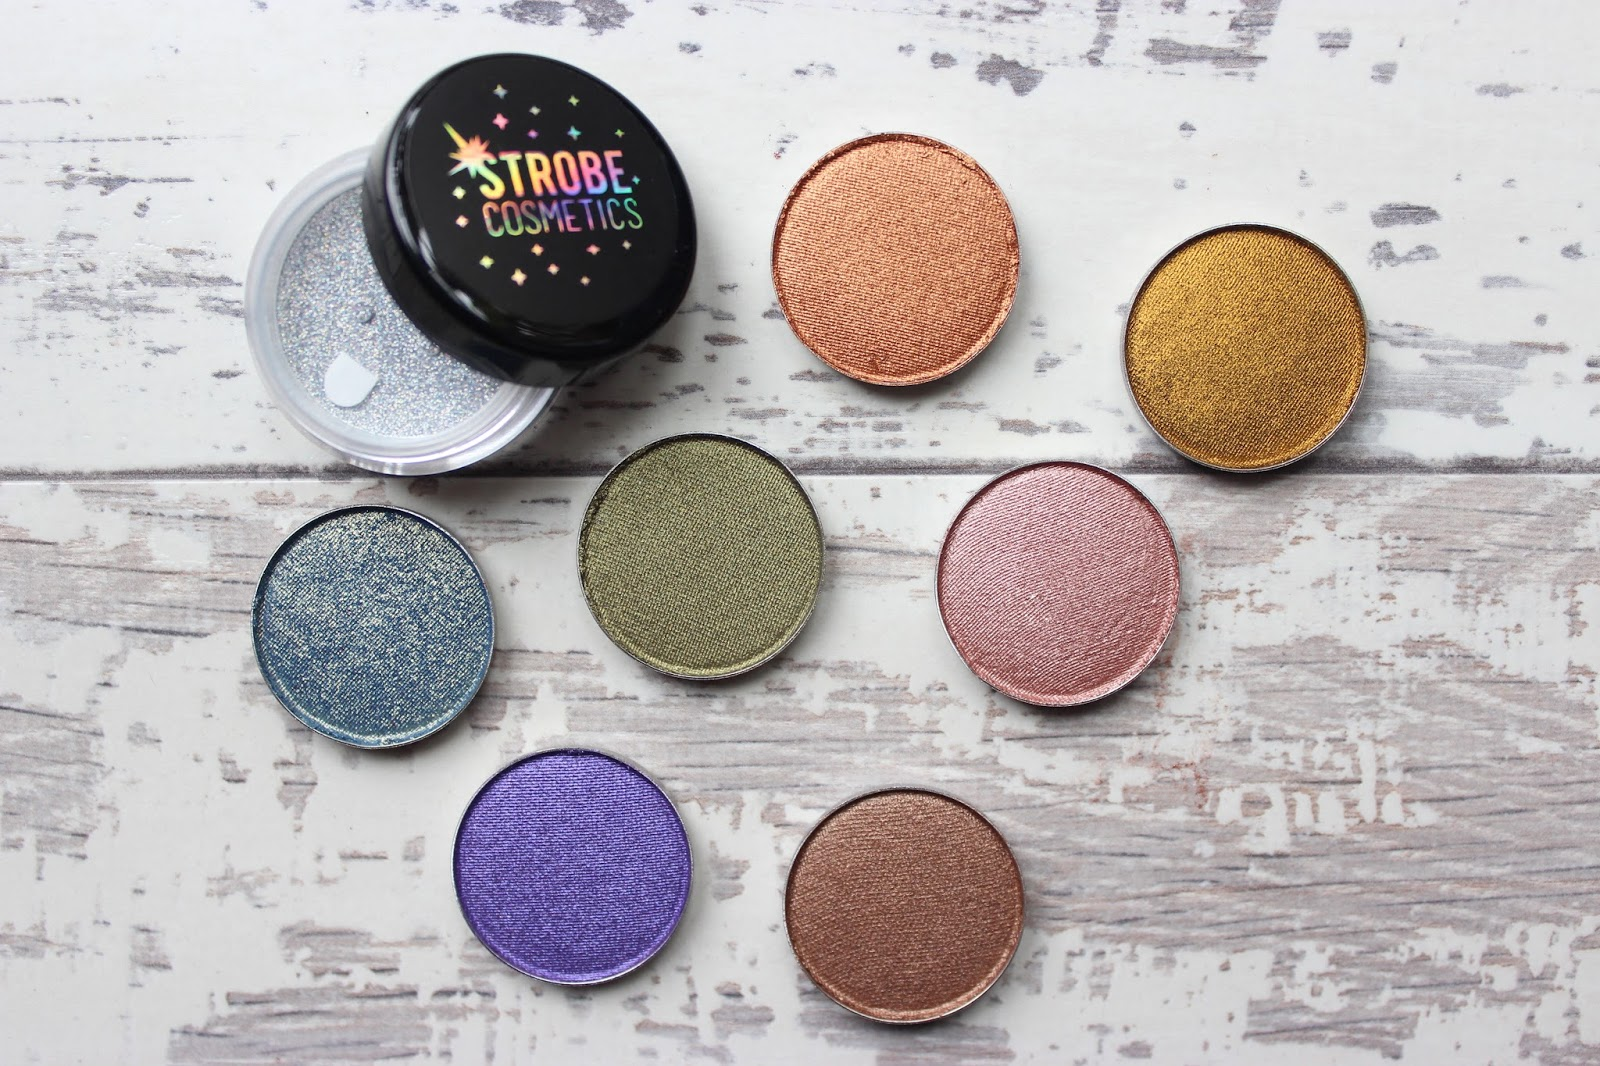 strobe cosmetics dark skin review blogger discoveries of self blog